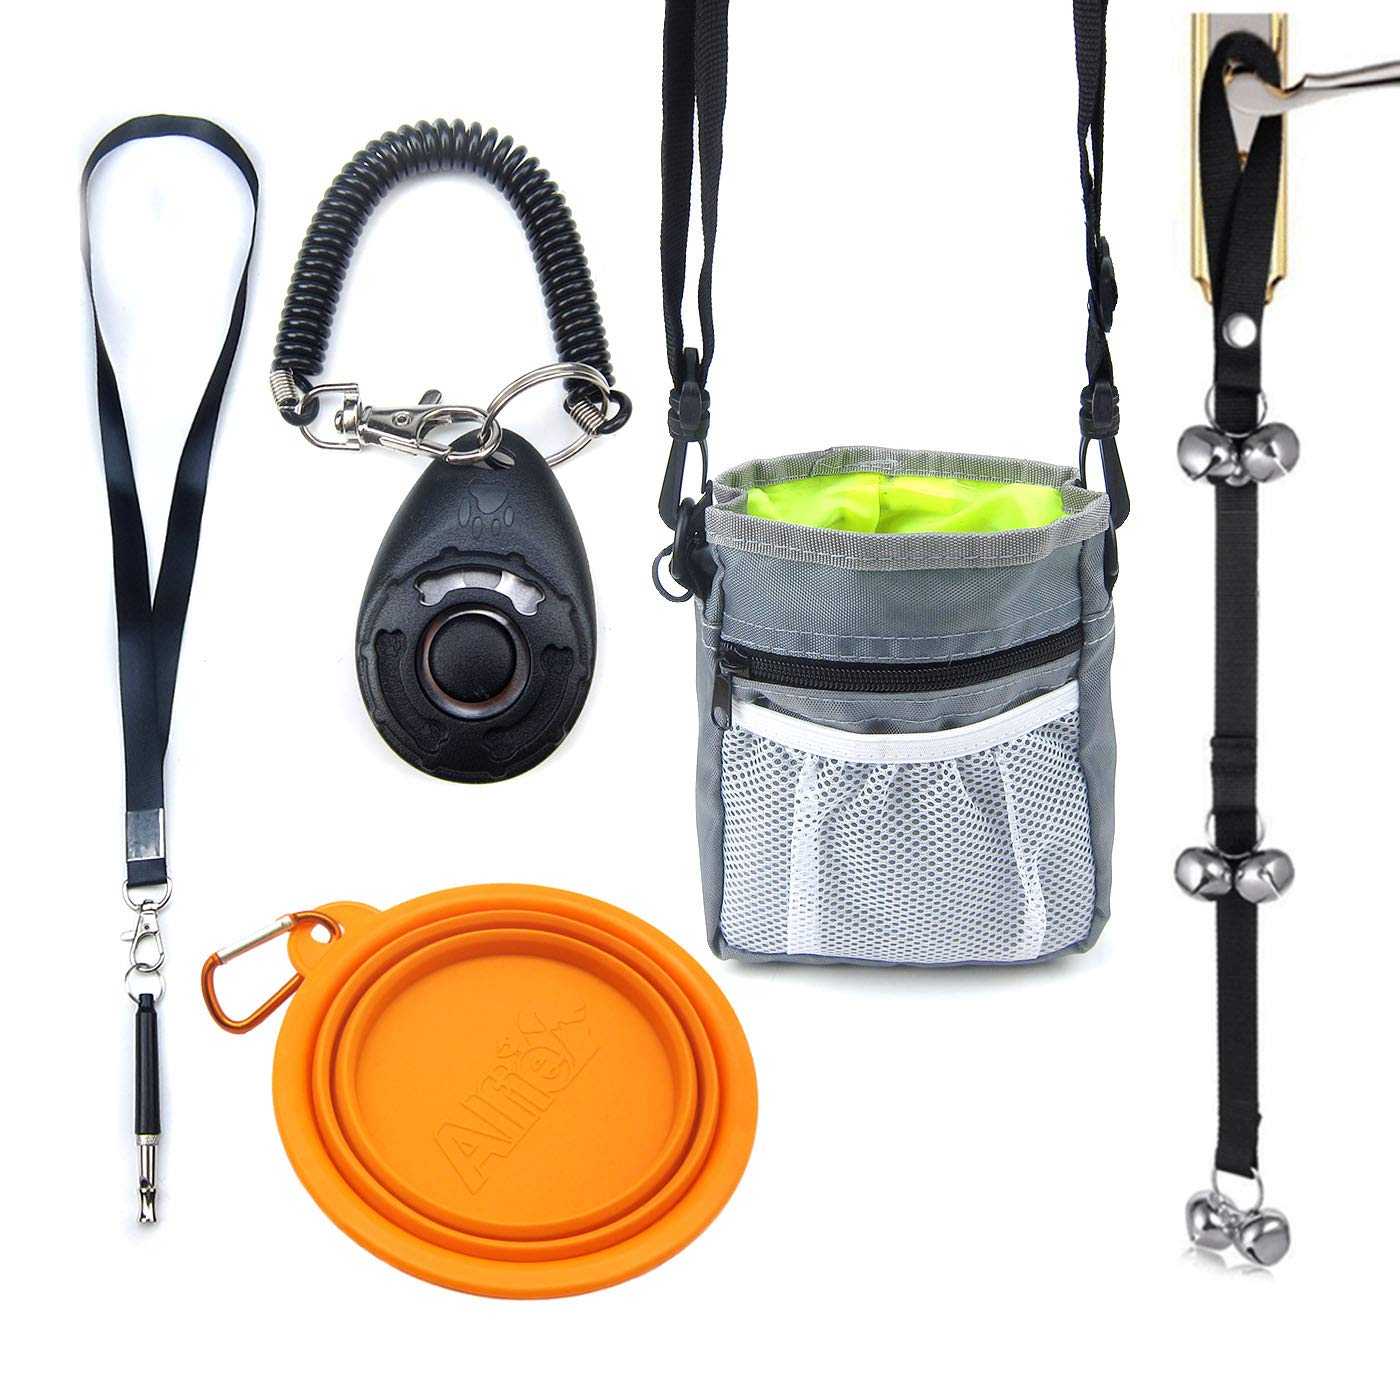 Alfie Pet - Bill 5 in 1 Puppy and Dog Training Essential Kit - Treat Pouch, Bark Control Whistle, House Training Doorbells, Clicker, and Dog Bowl by Alfie